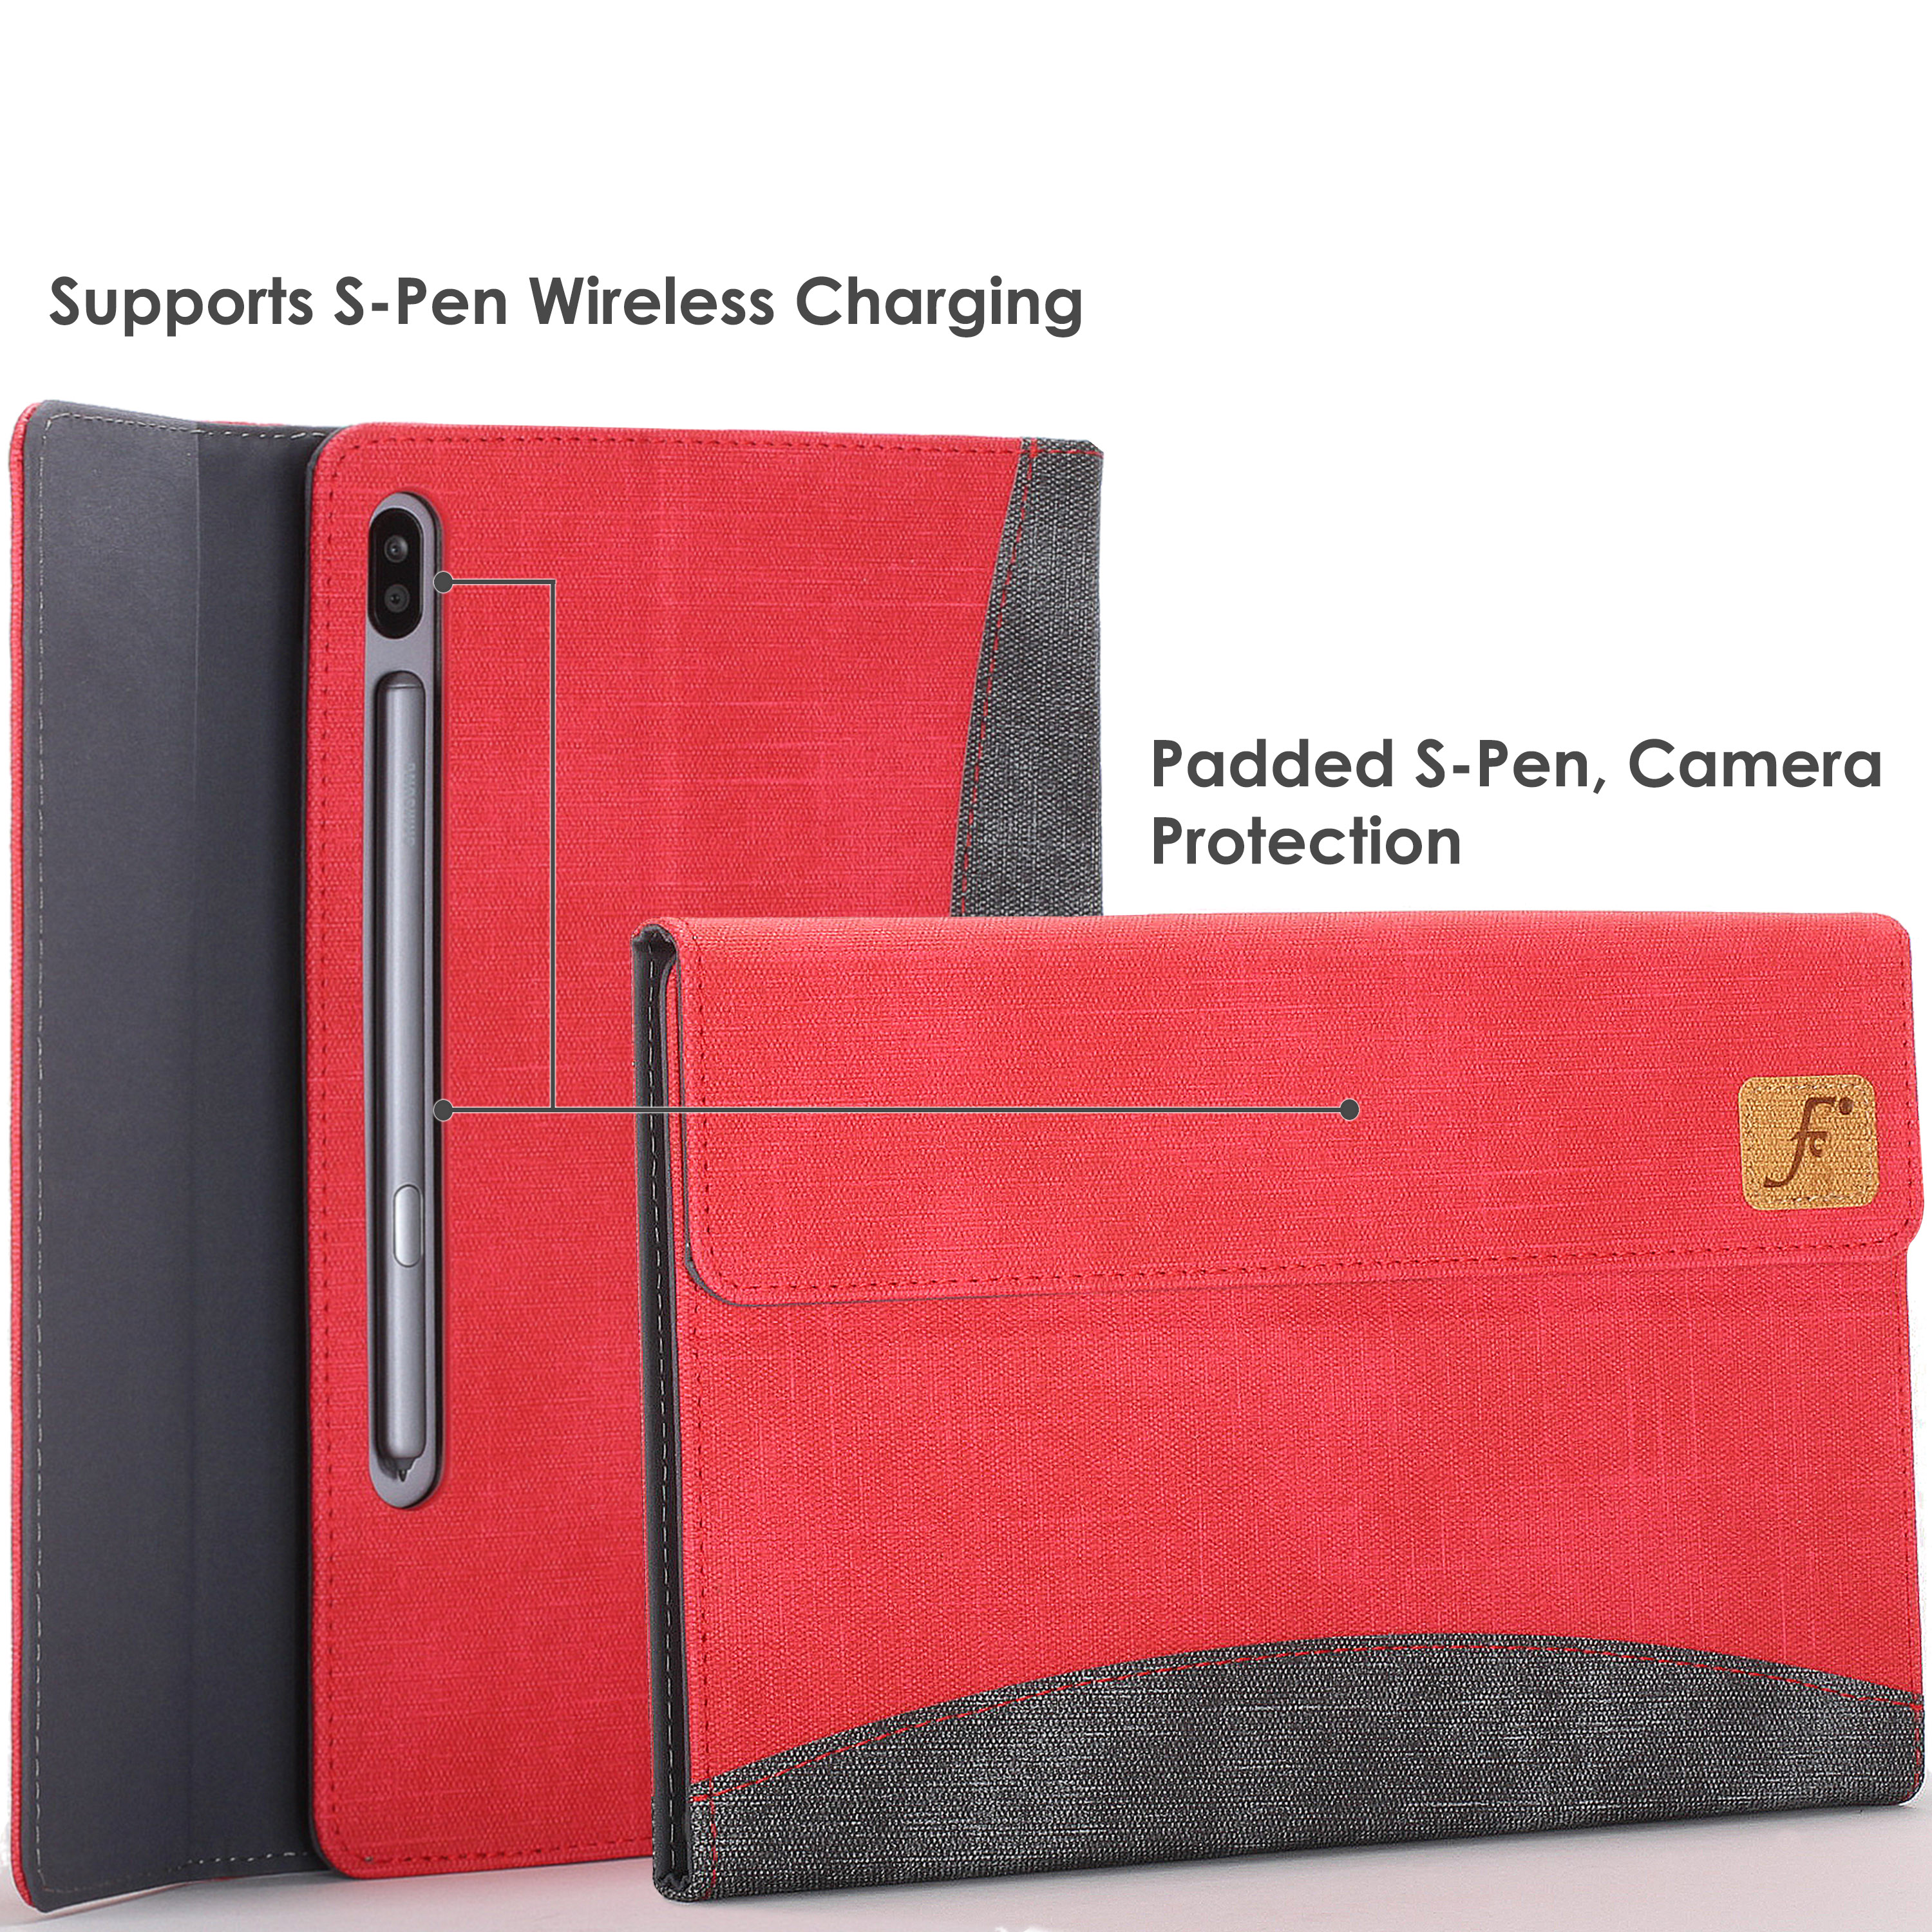 Samsung-Galaxy-Tab-S6-10-5-Case-Cover-Stand-Stylus-amp-Screen-Protector thumbnail 21